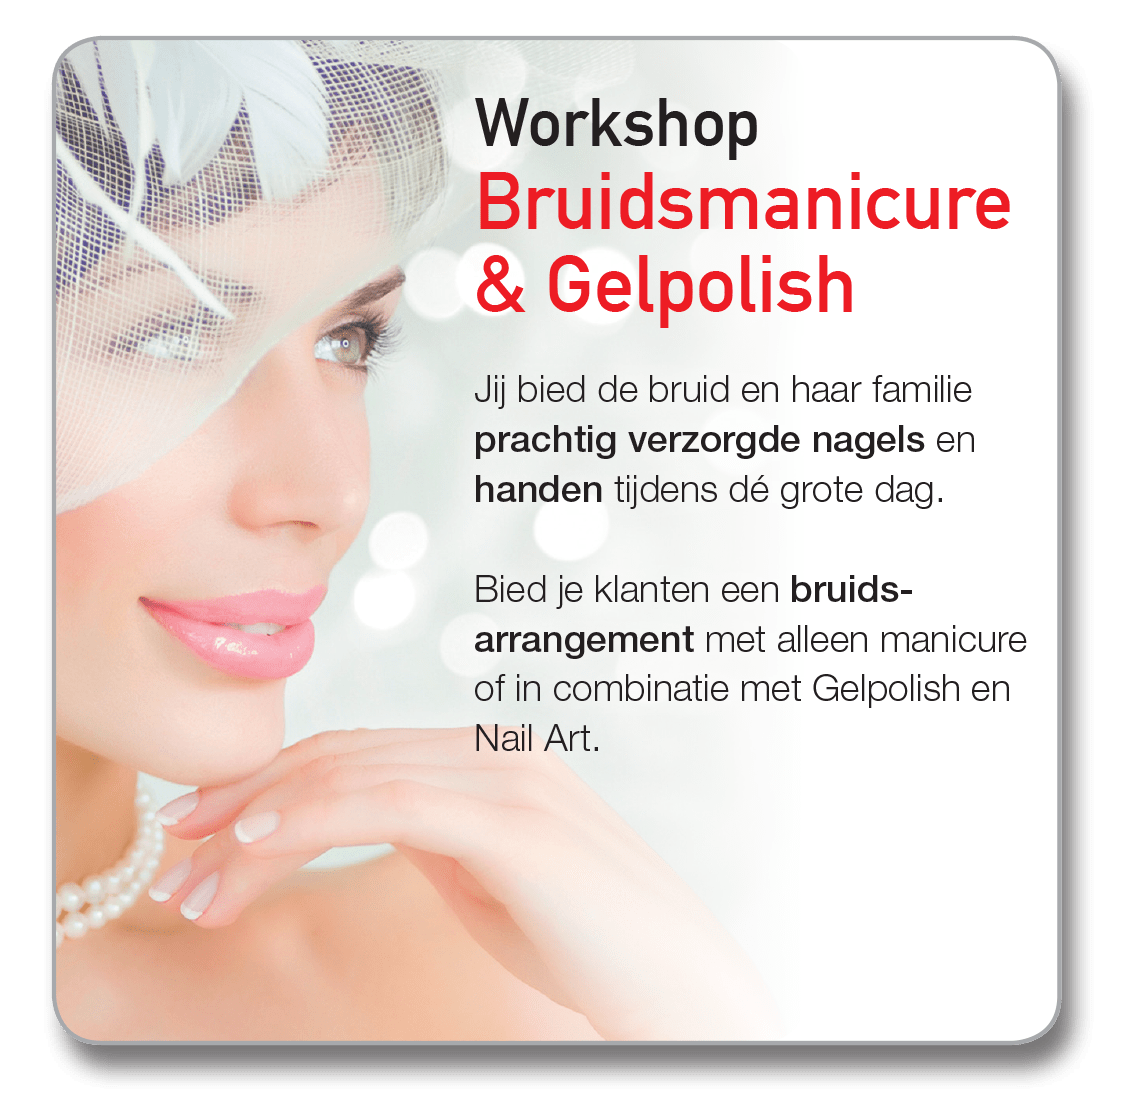 Workshop Bruidsmanicure